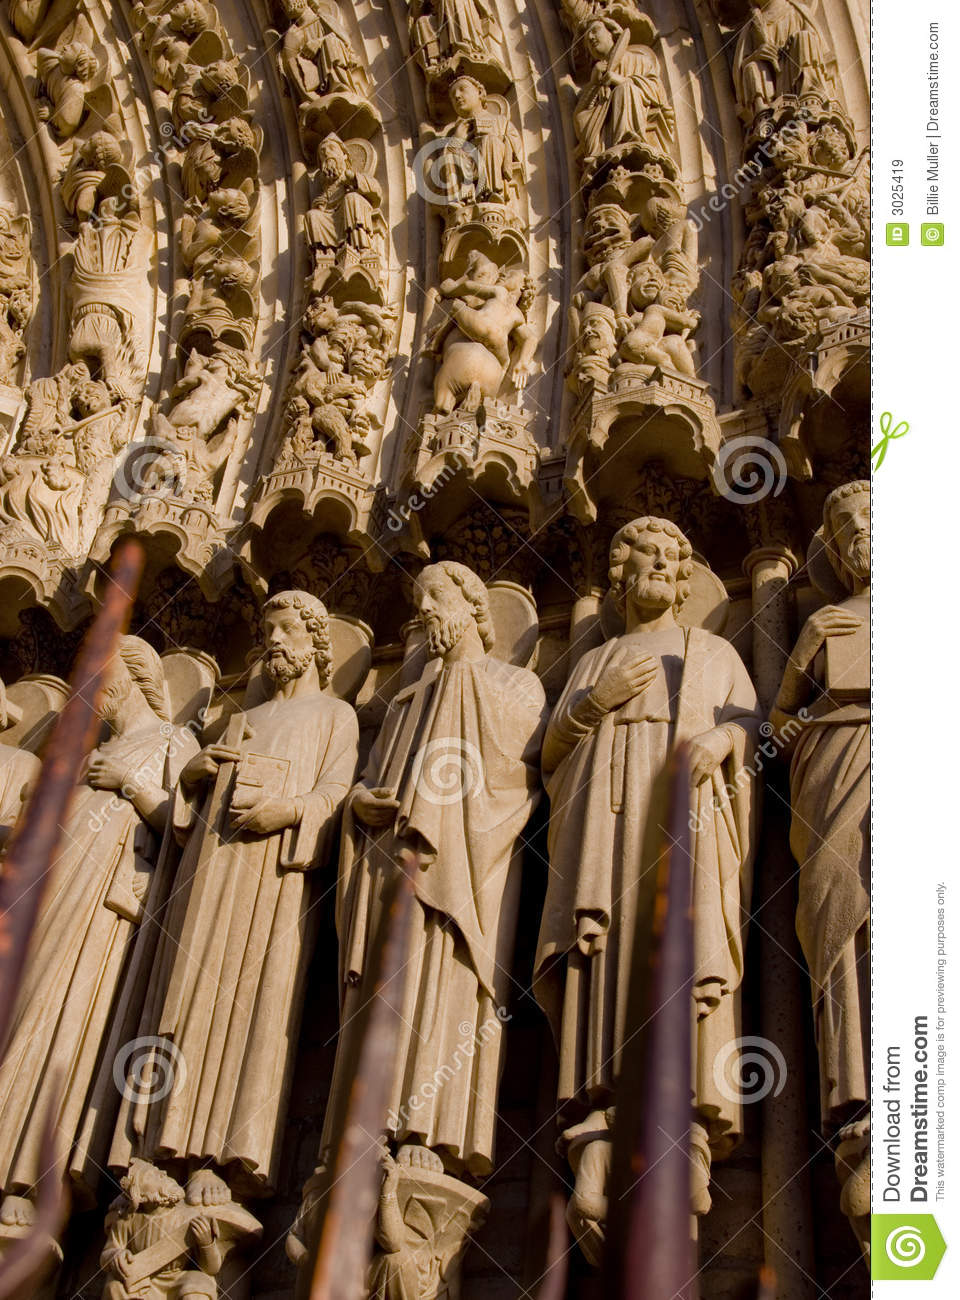 french gothic architecture stock image image of sculpture 3025419. Black Bedroom Furniture Sets. Home Design Ideas